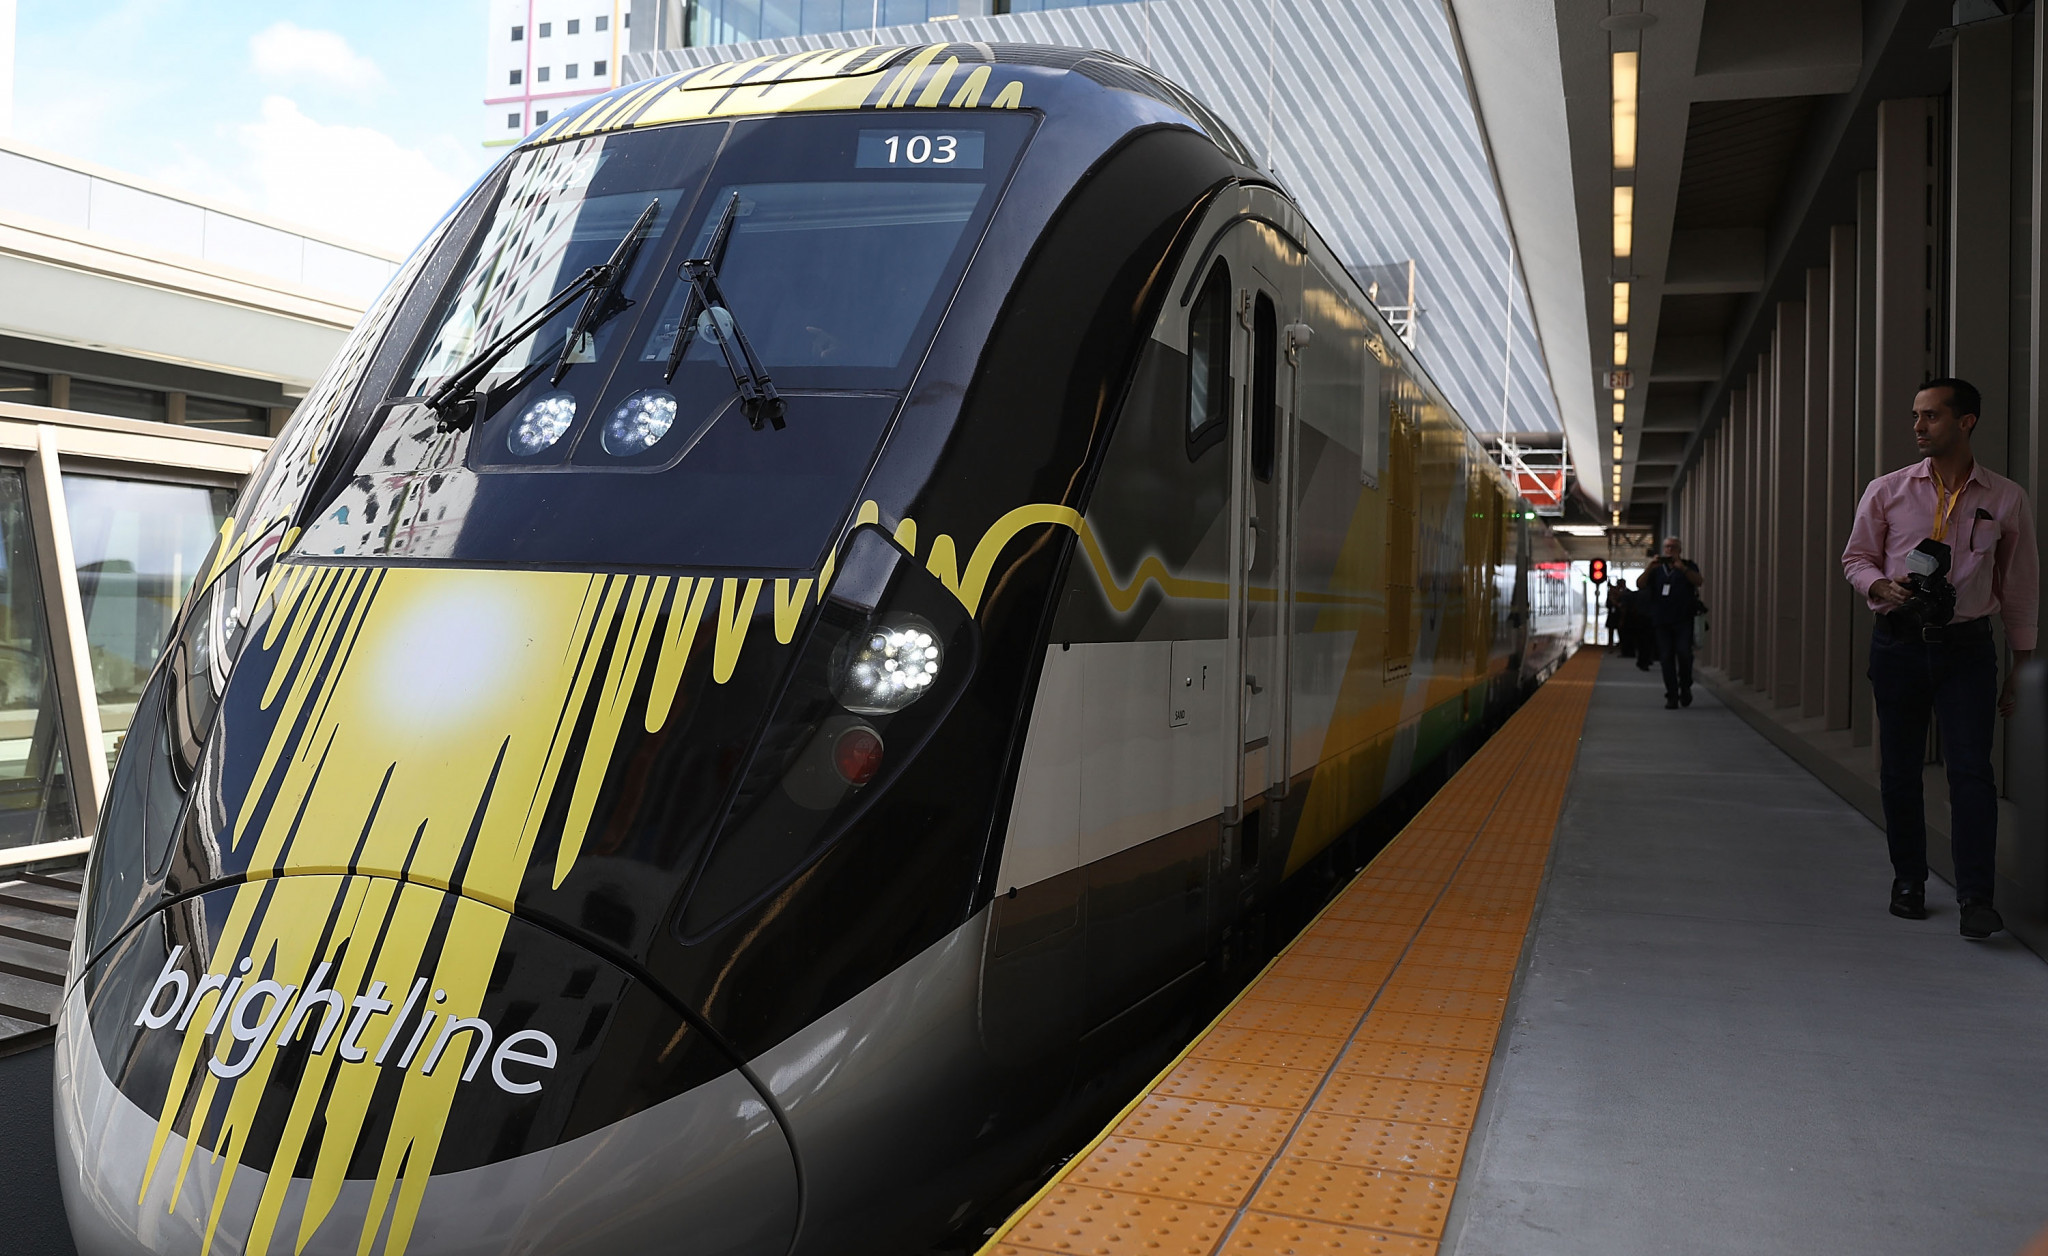 Brightline owner suggests high-speed train link could give Las Vegas role for Los Angeles 2028